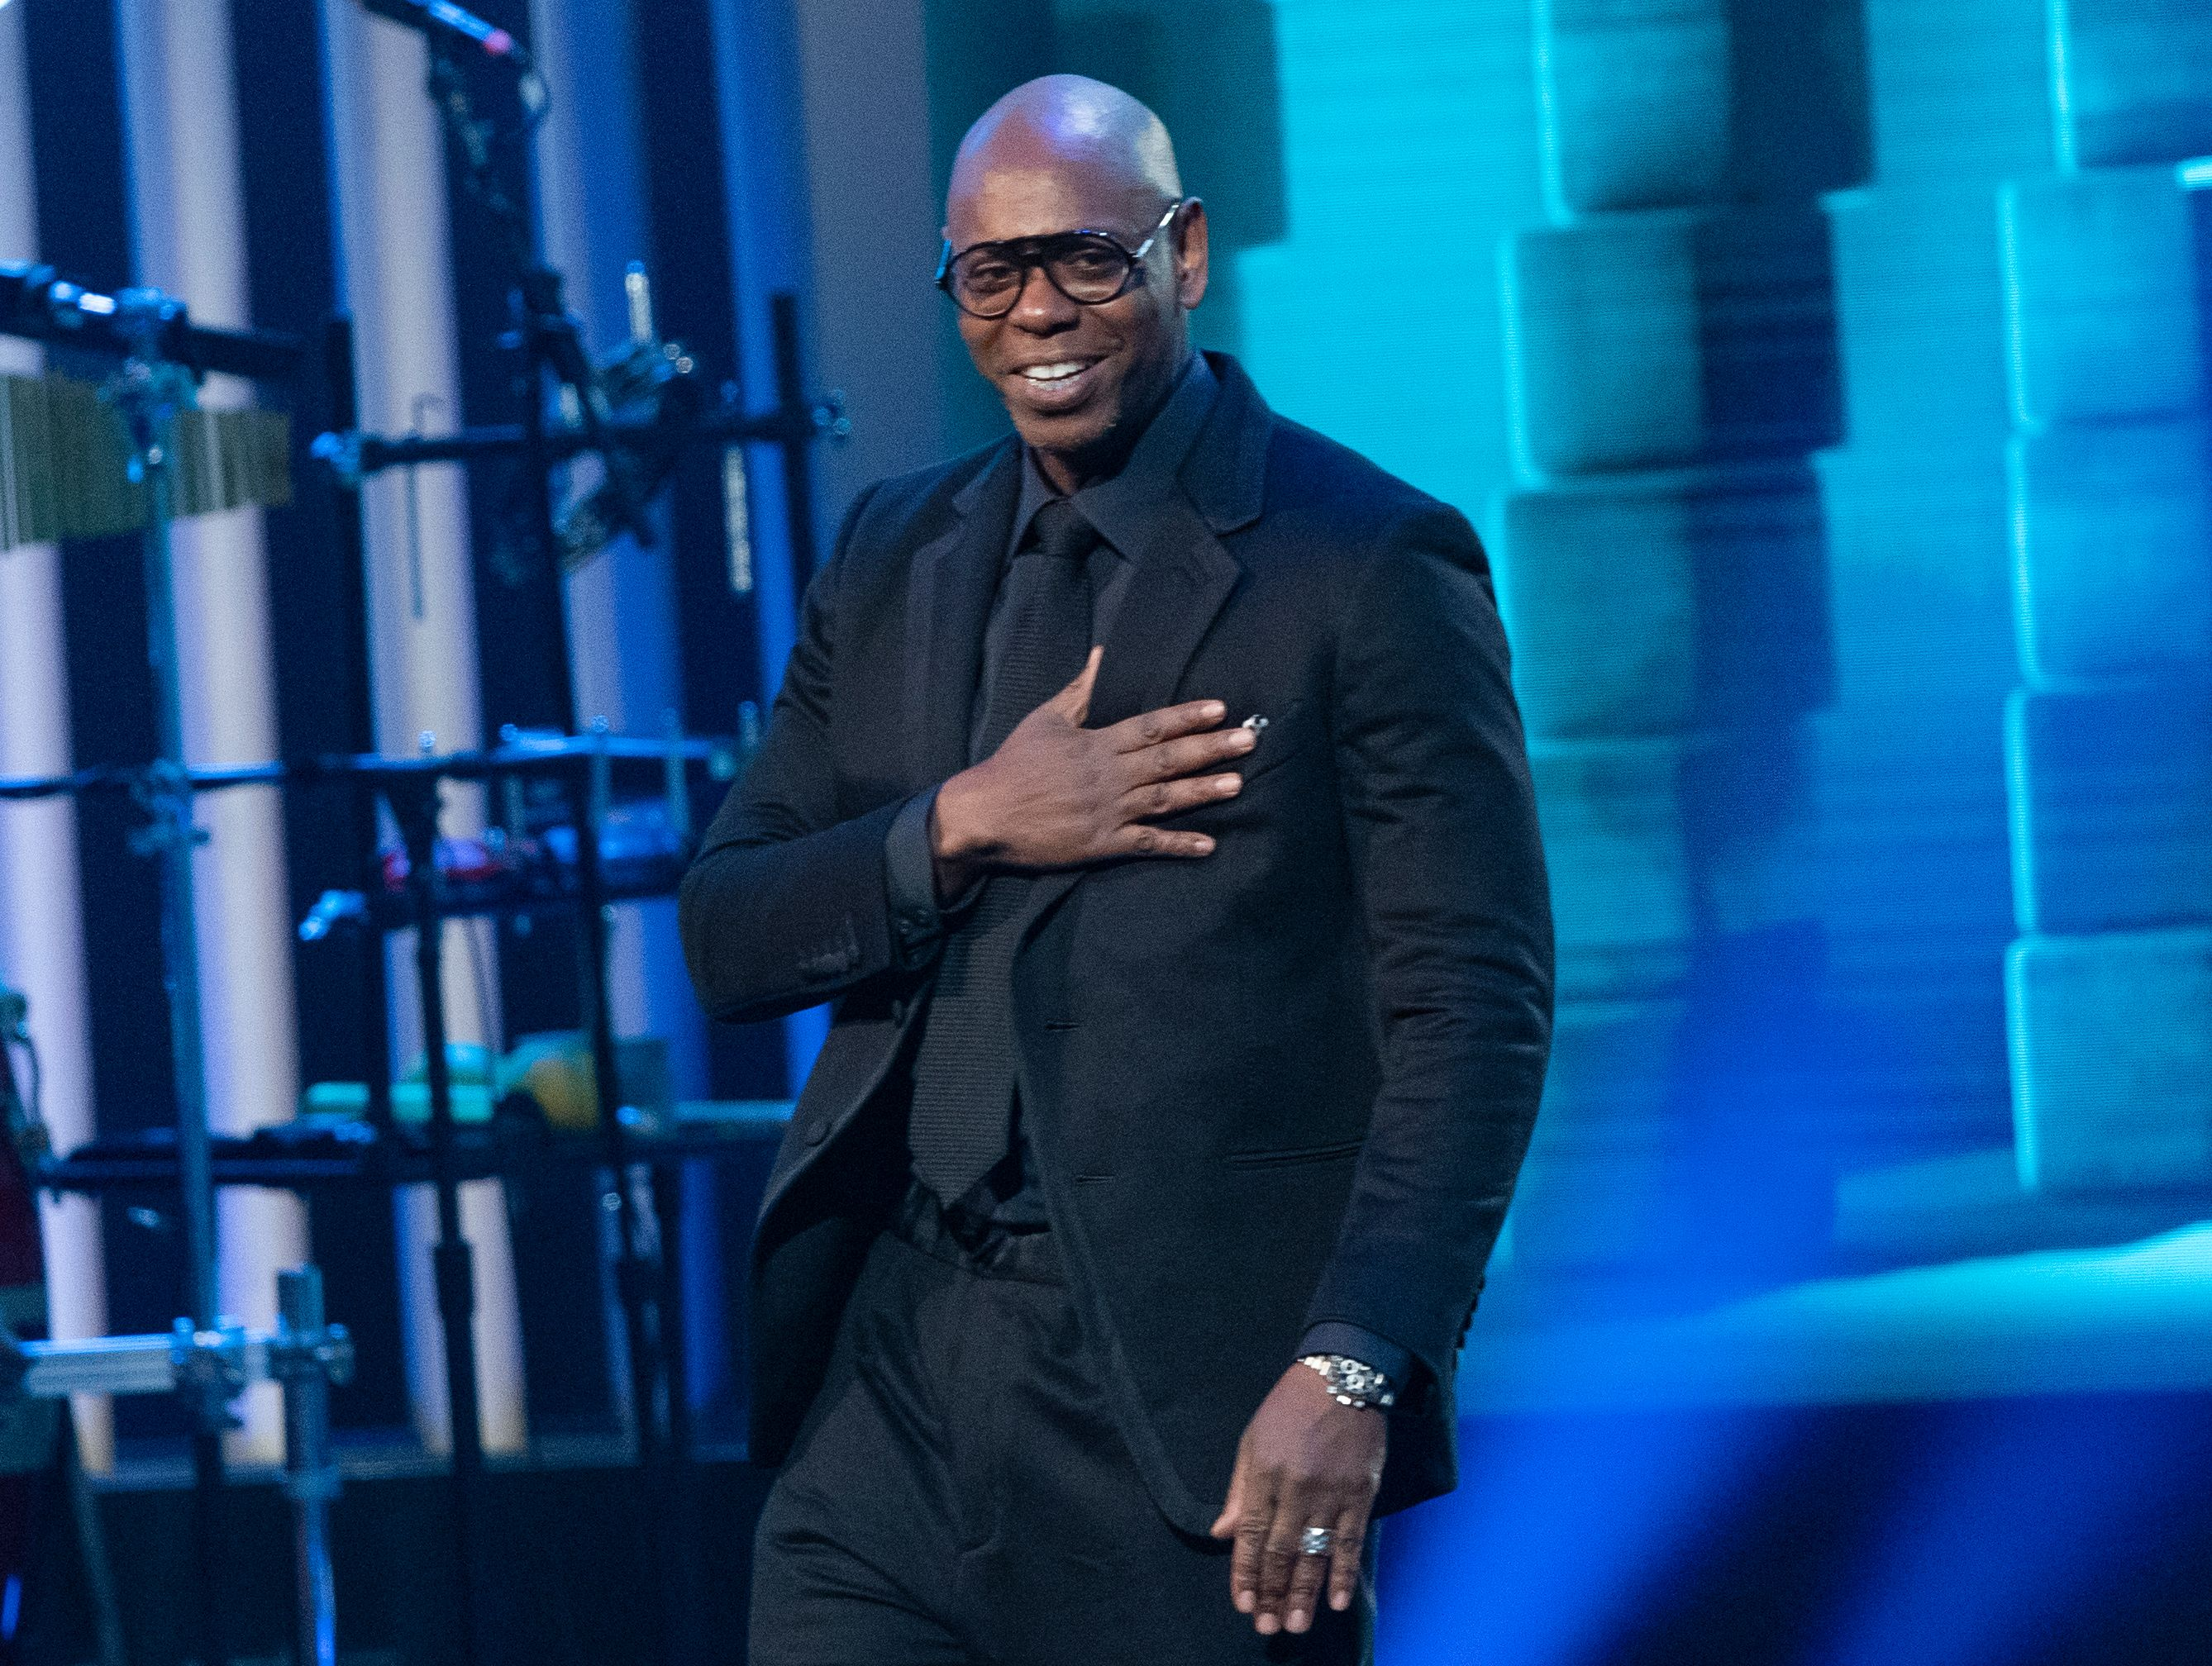 dave chappelle is hosting social distanced comedy shows in ohio cleveland com dave chappelle is hosting social distanced comedy shows in ohio cleveland com